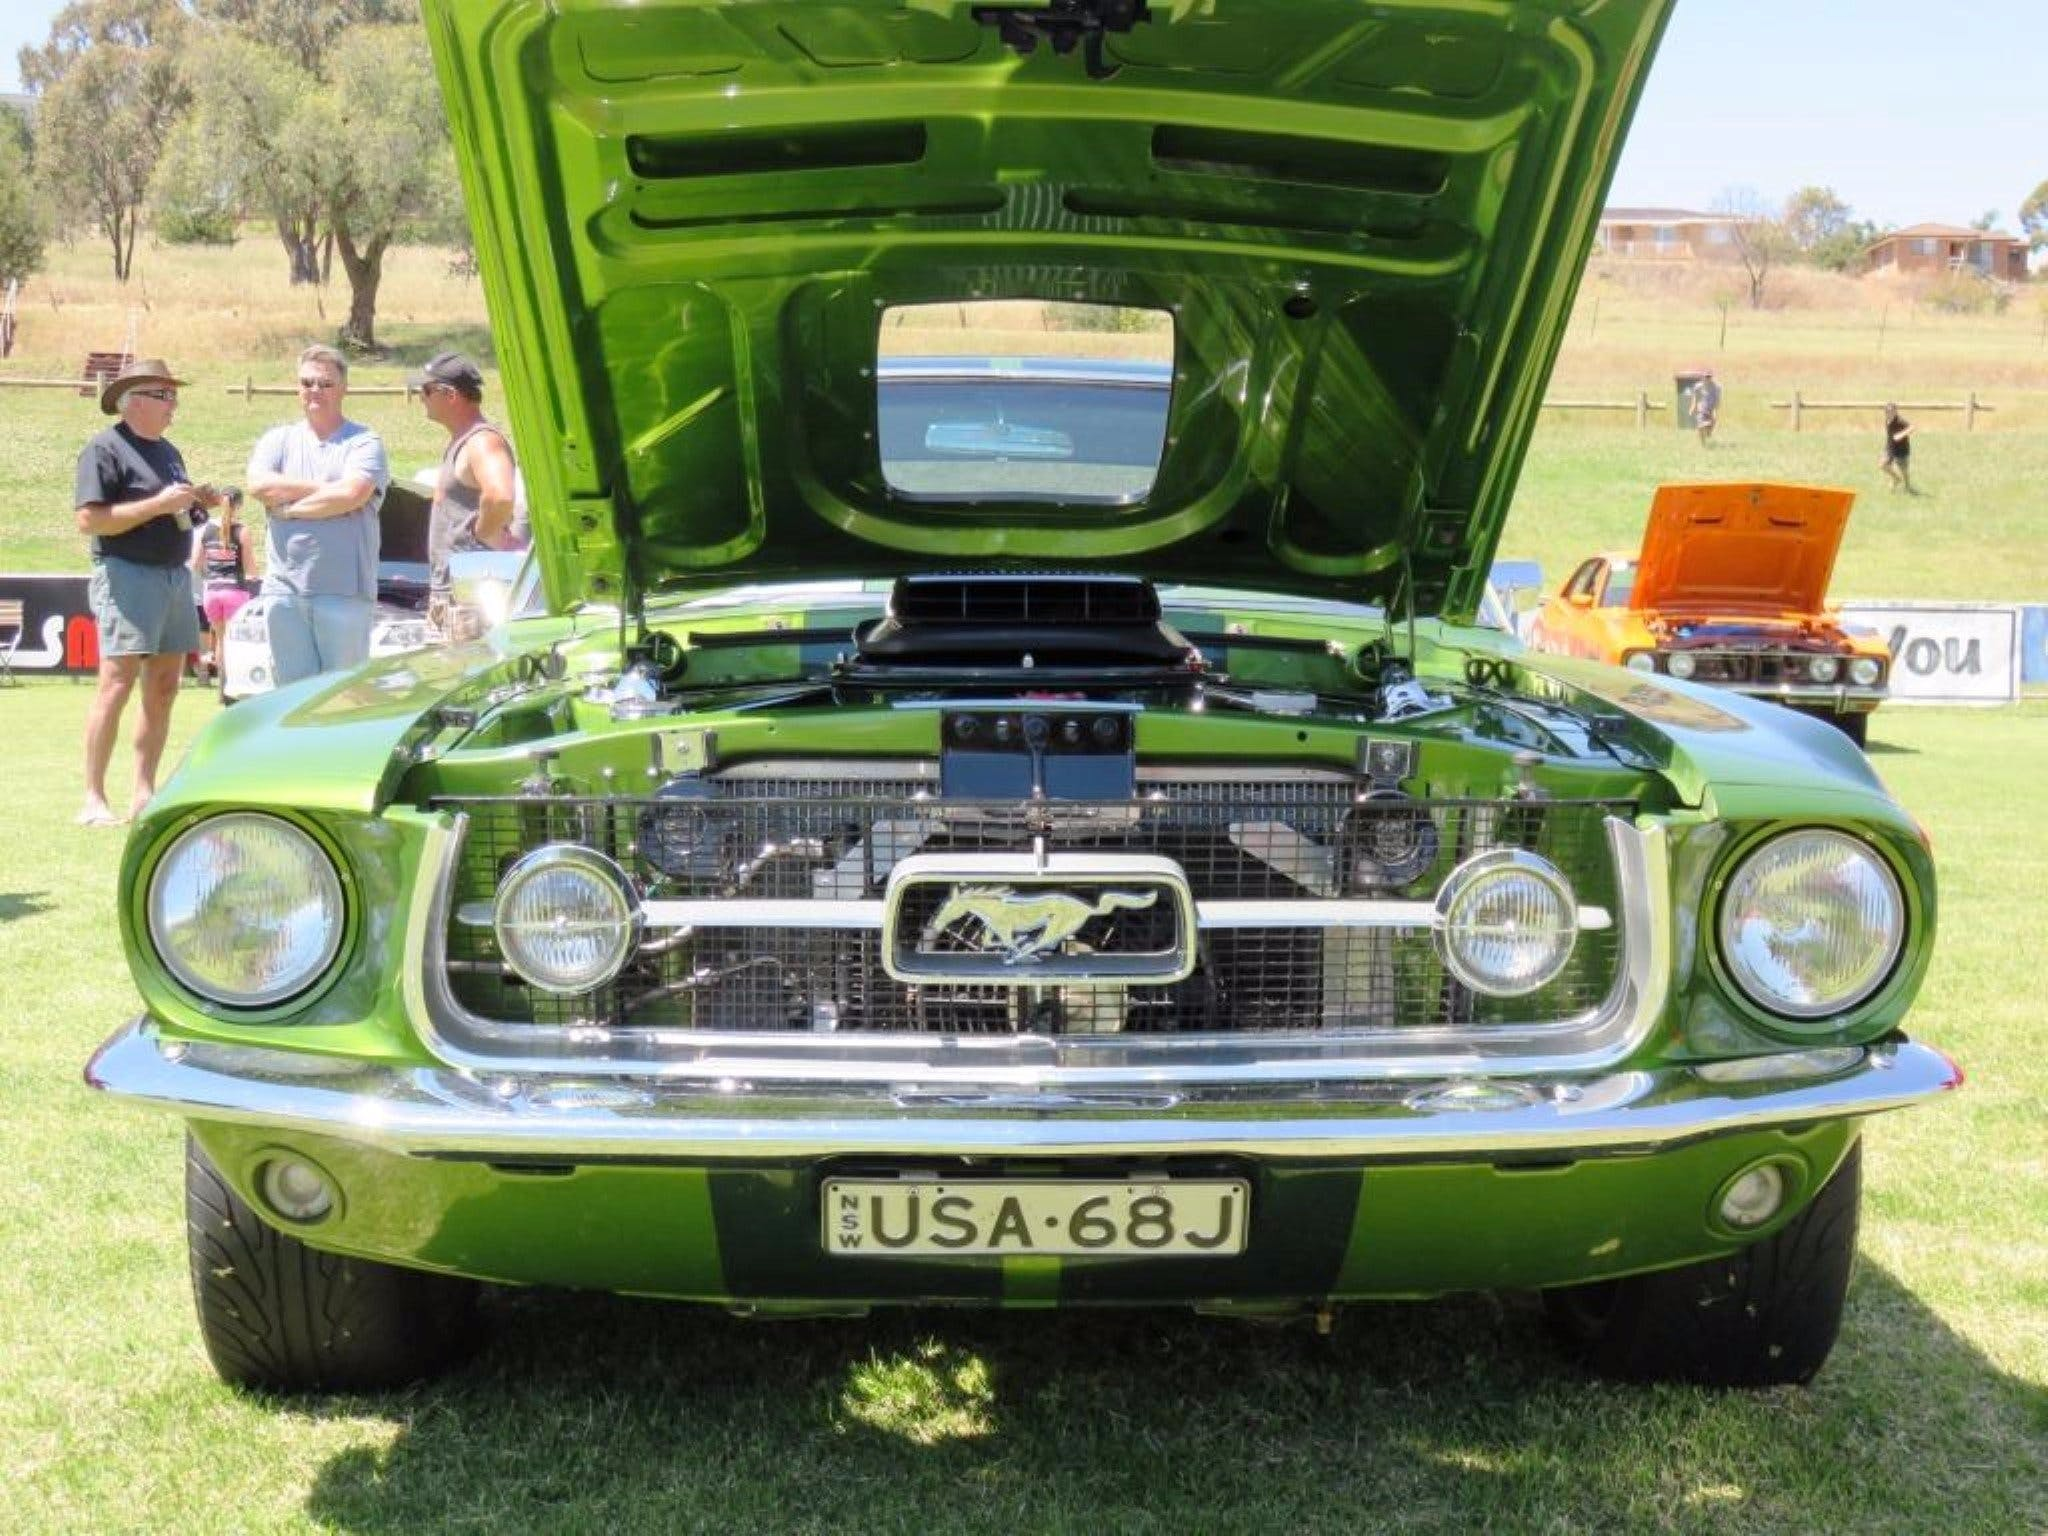 Central West Car Club Charity Show and Shine - Pubs Perth